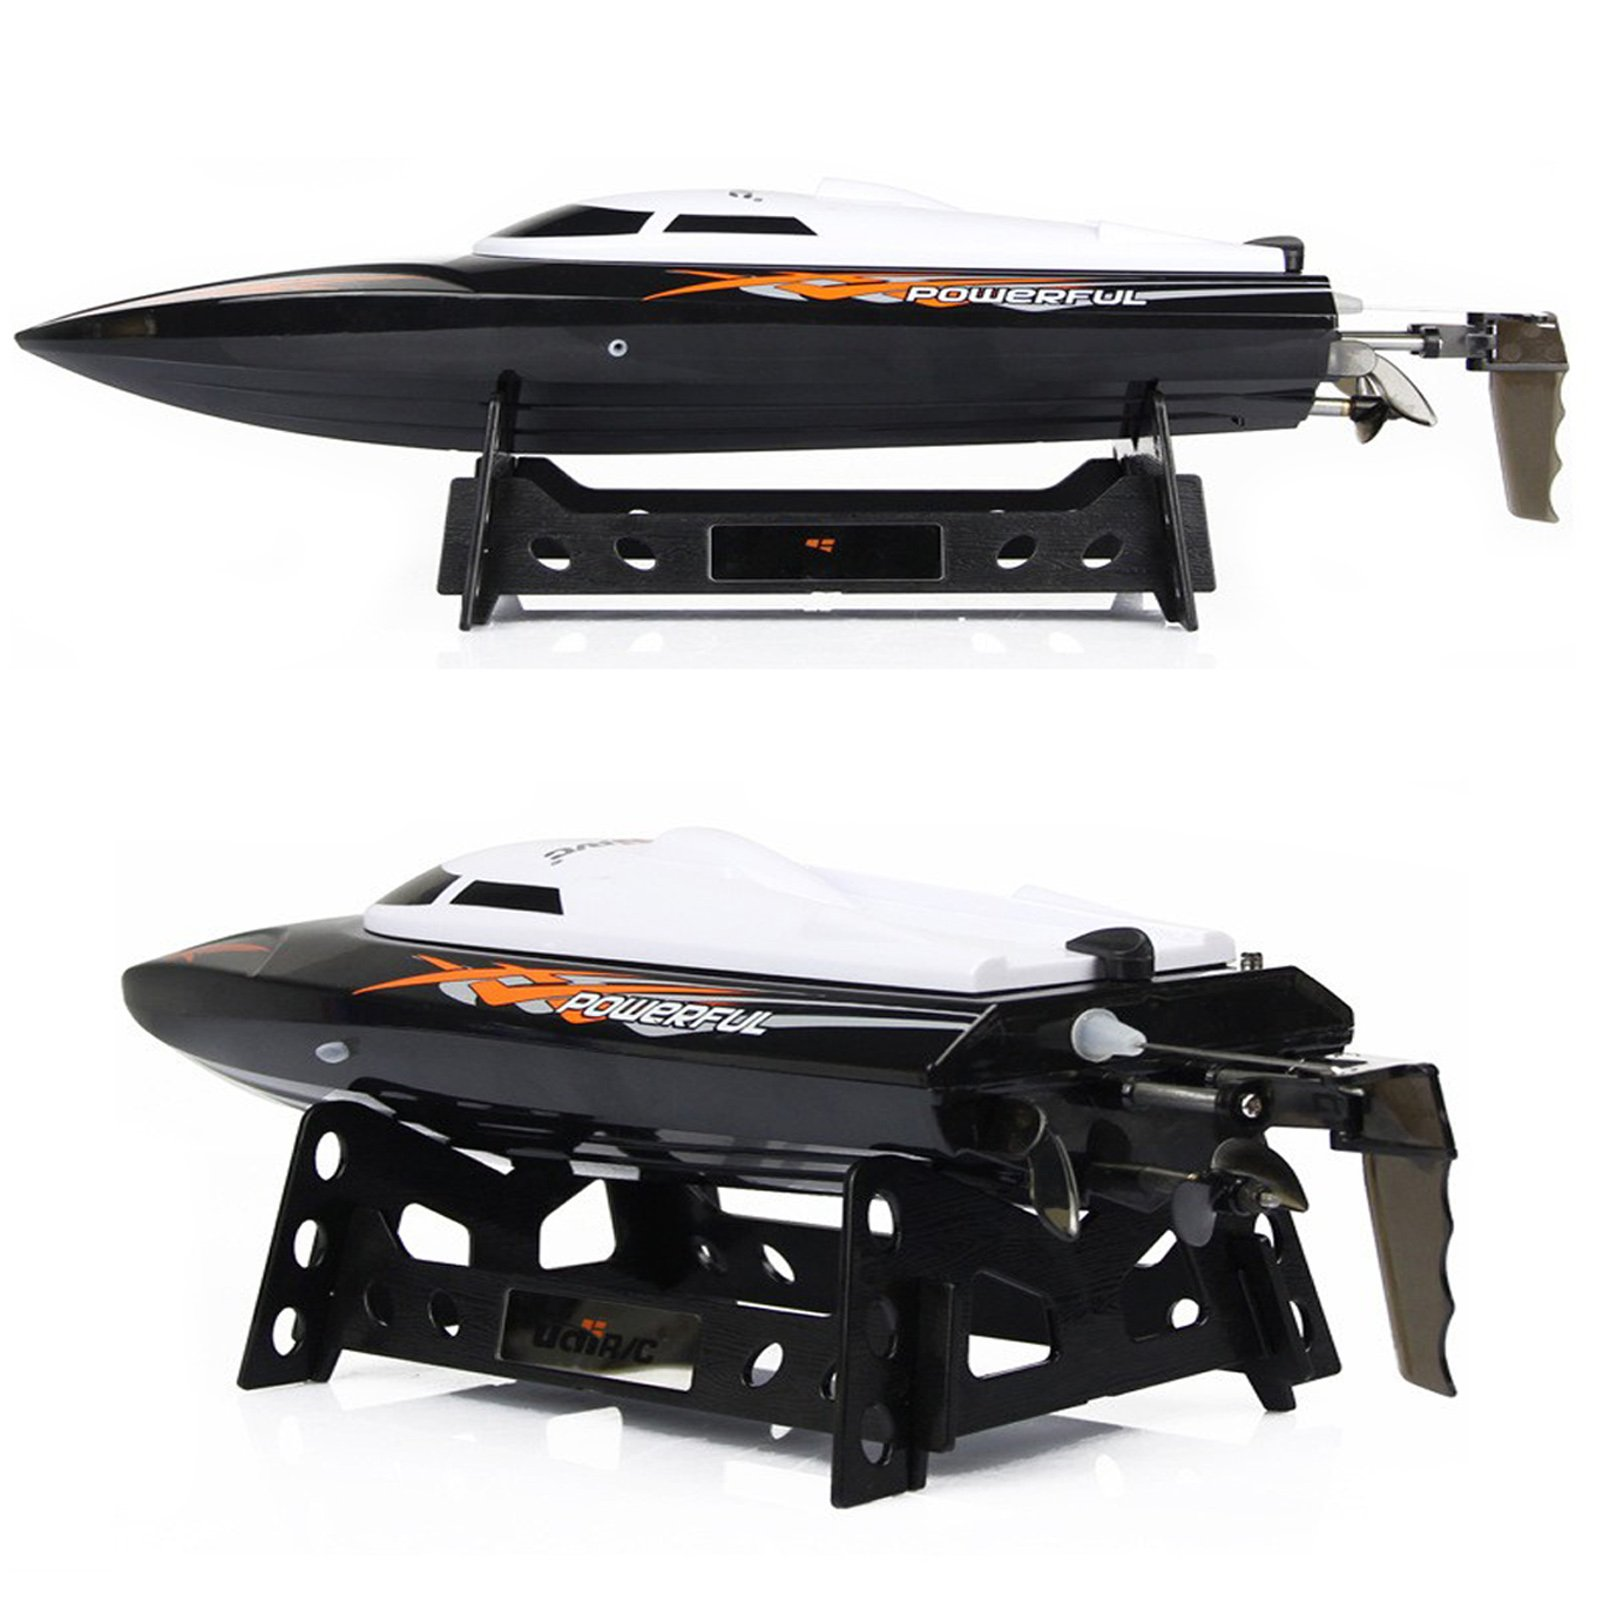 Cheerwing RC Racing Boat for Adults - High Speed Electronic Remote Control Boat for Kids, Black by Cheerwing (Image #2)